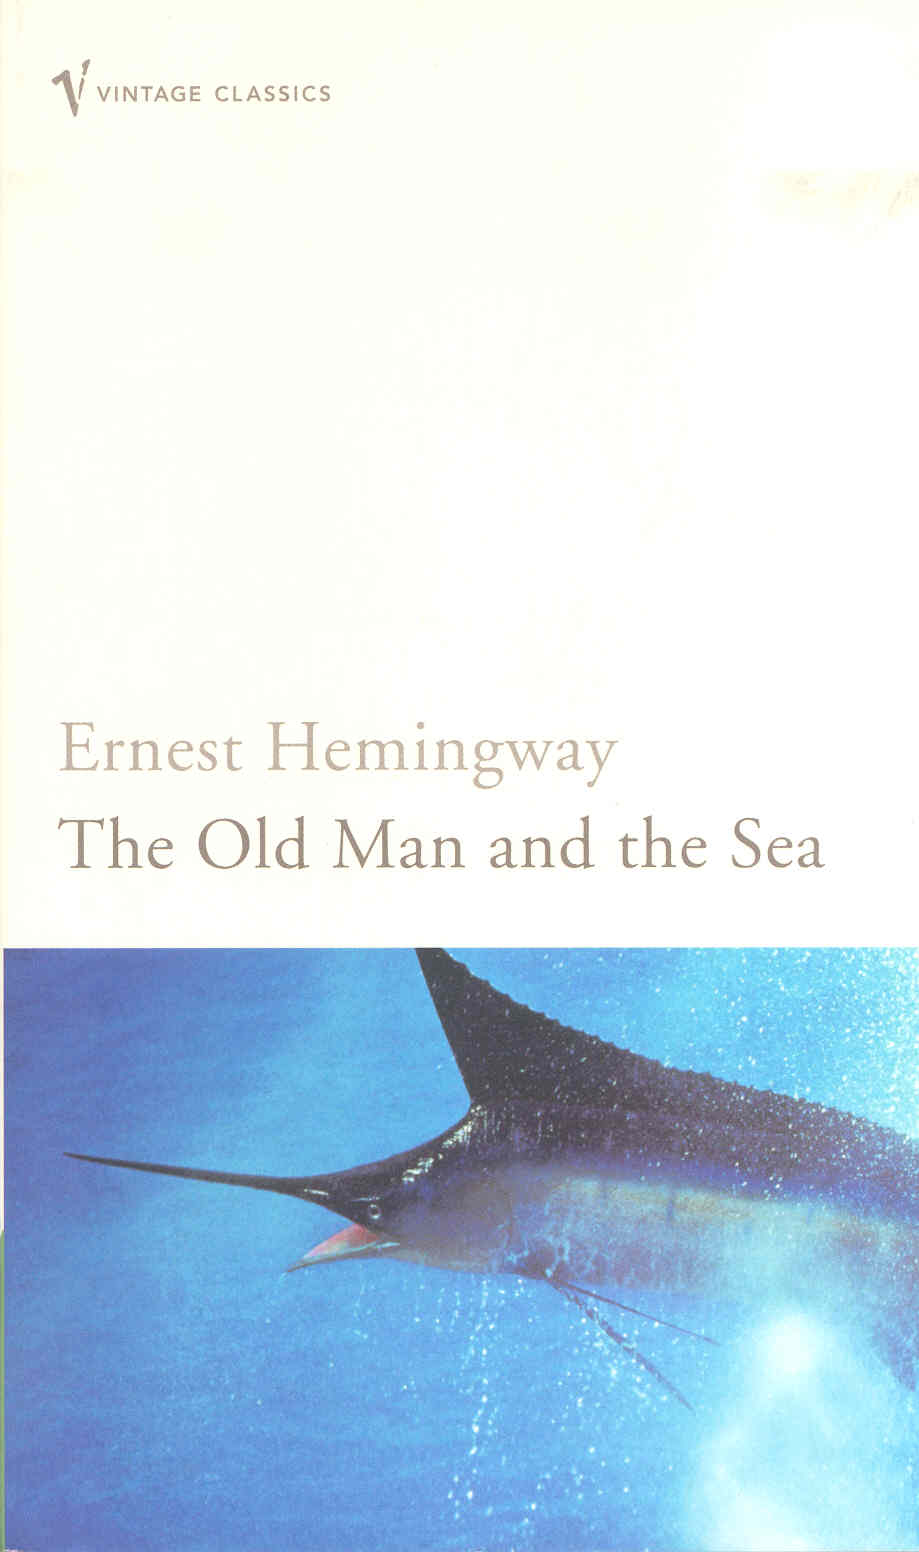 the journey from illusion to disillusion in the old man and the sea by ernest hemingway